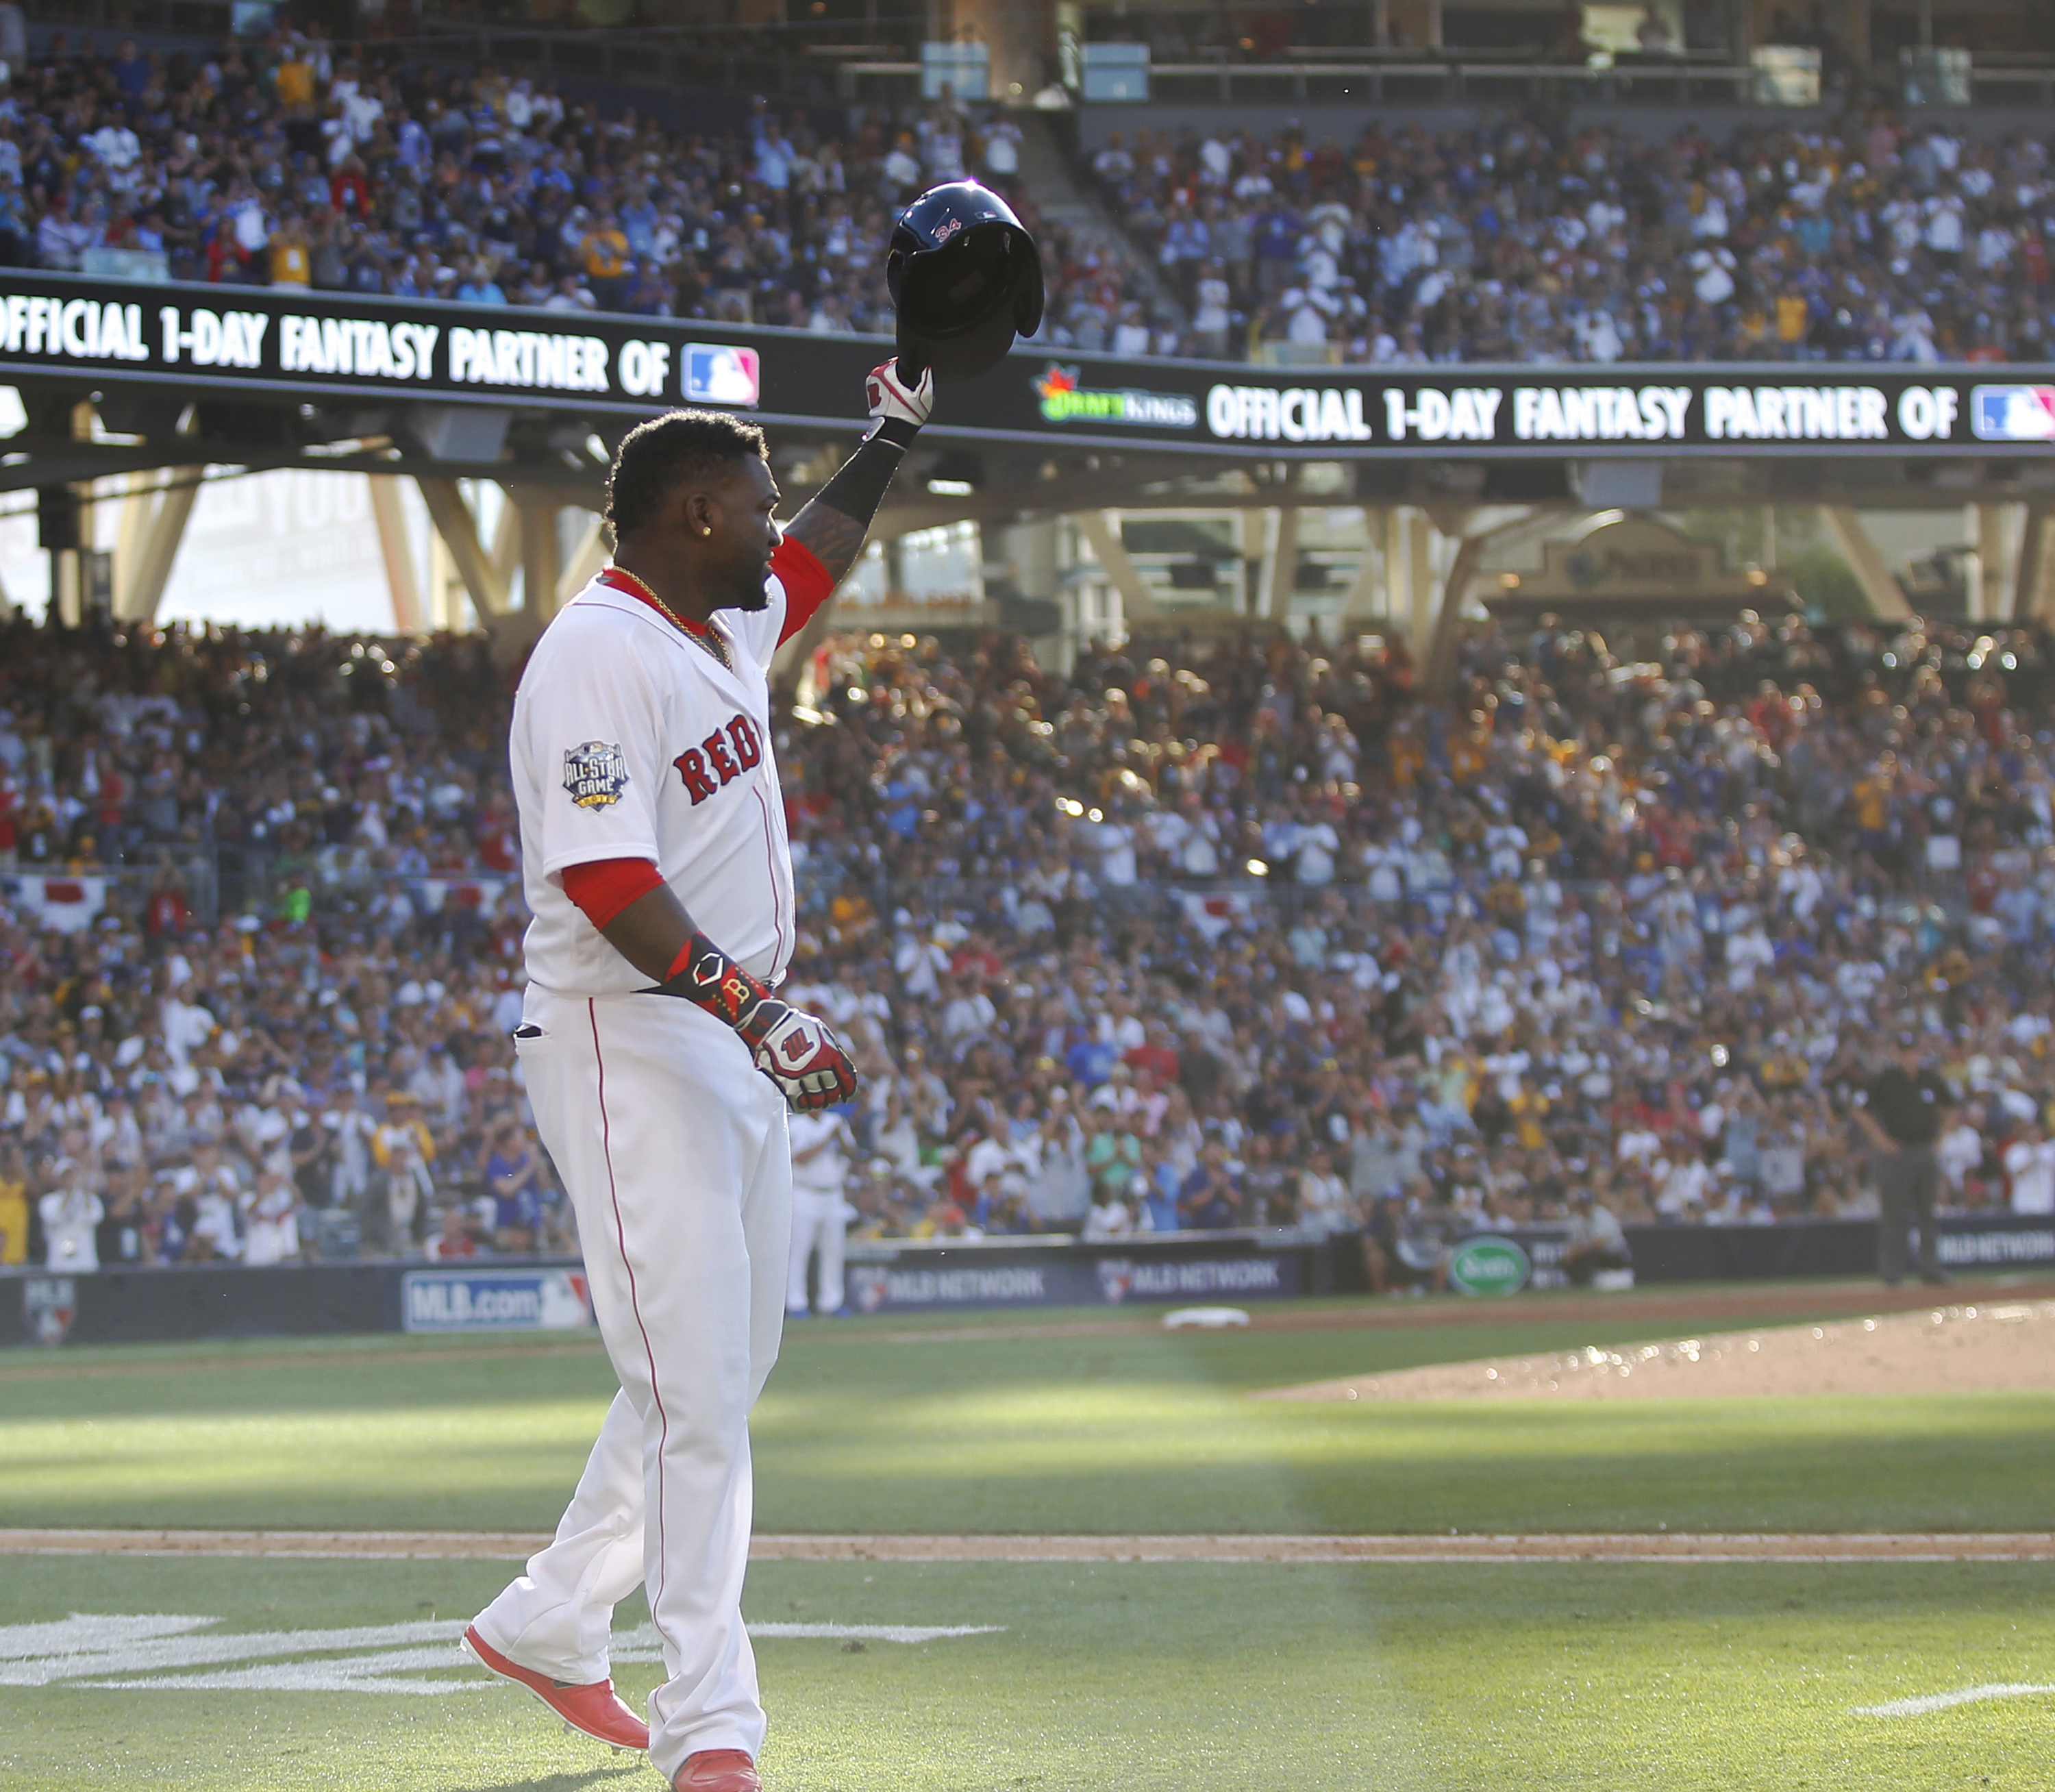 David Ortiz of the Boston Red Sox takes a curtain call after being lifted for a pinch runner during Tuesday's All-Star Game in San Diego.